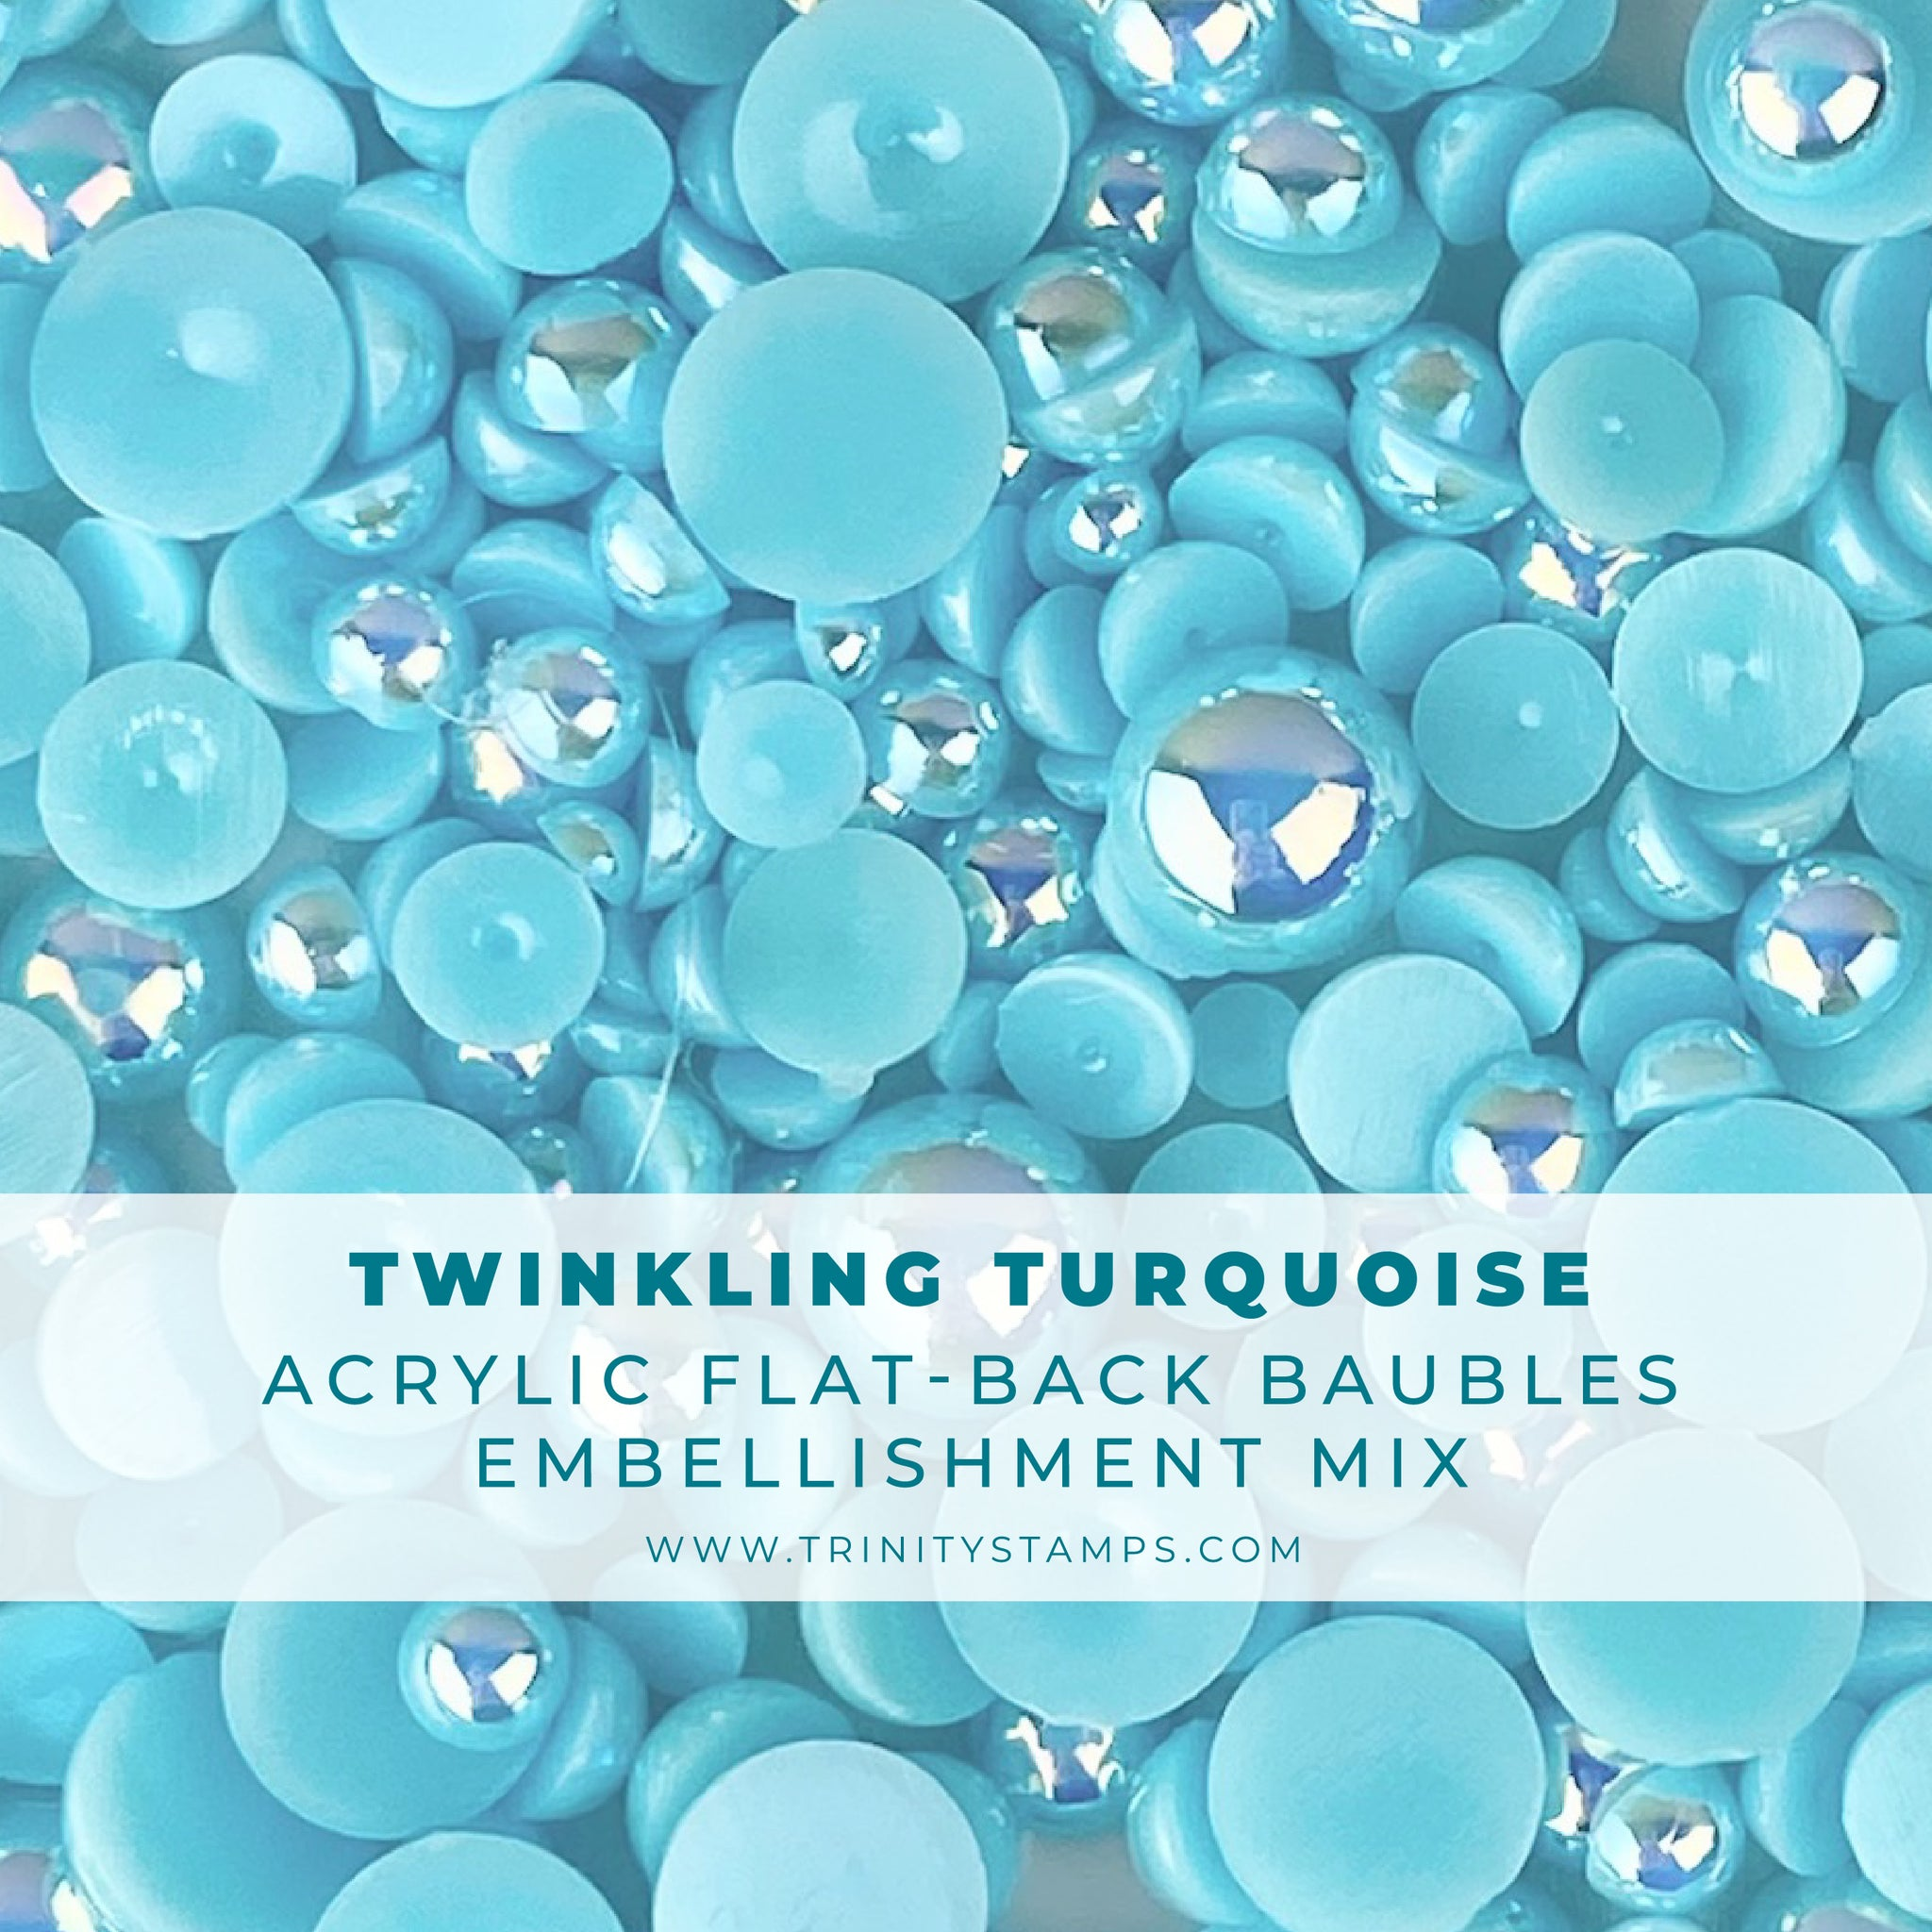 Twinkling Turquoise Baubles Embellishment Mix